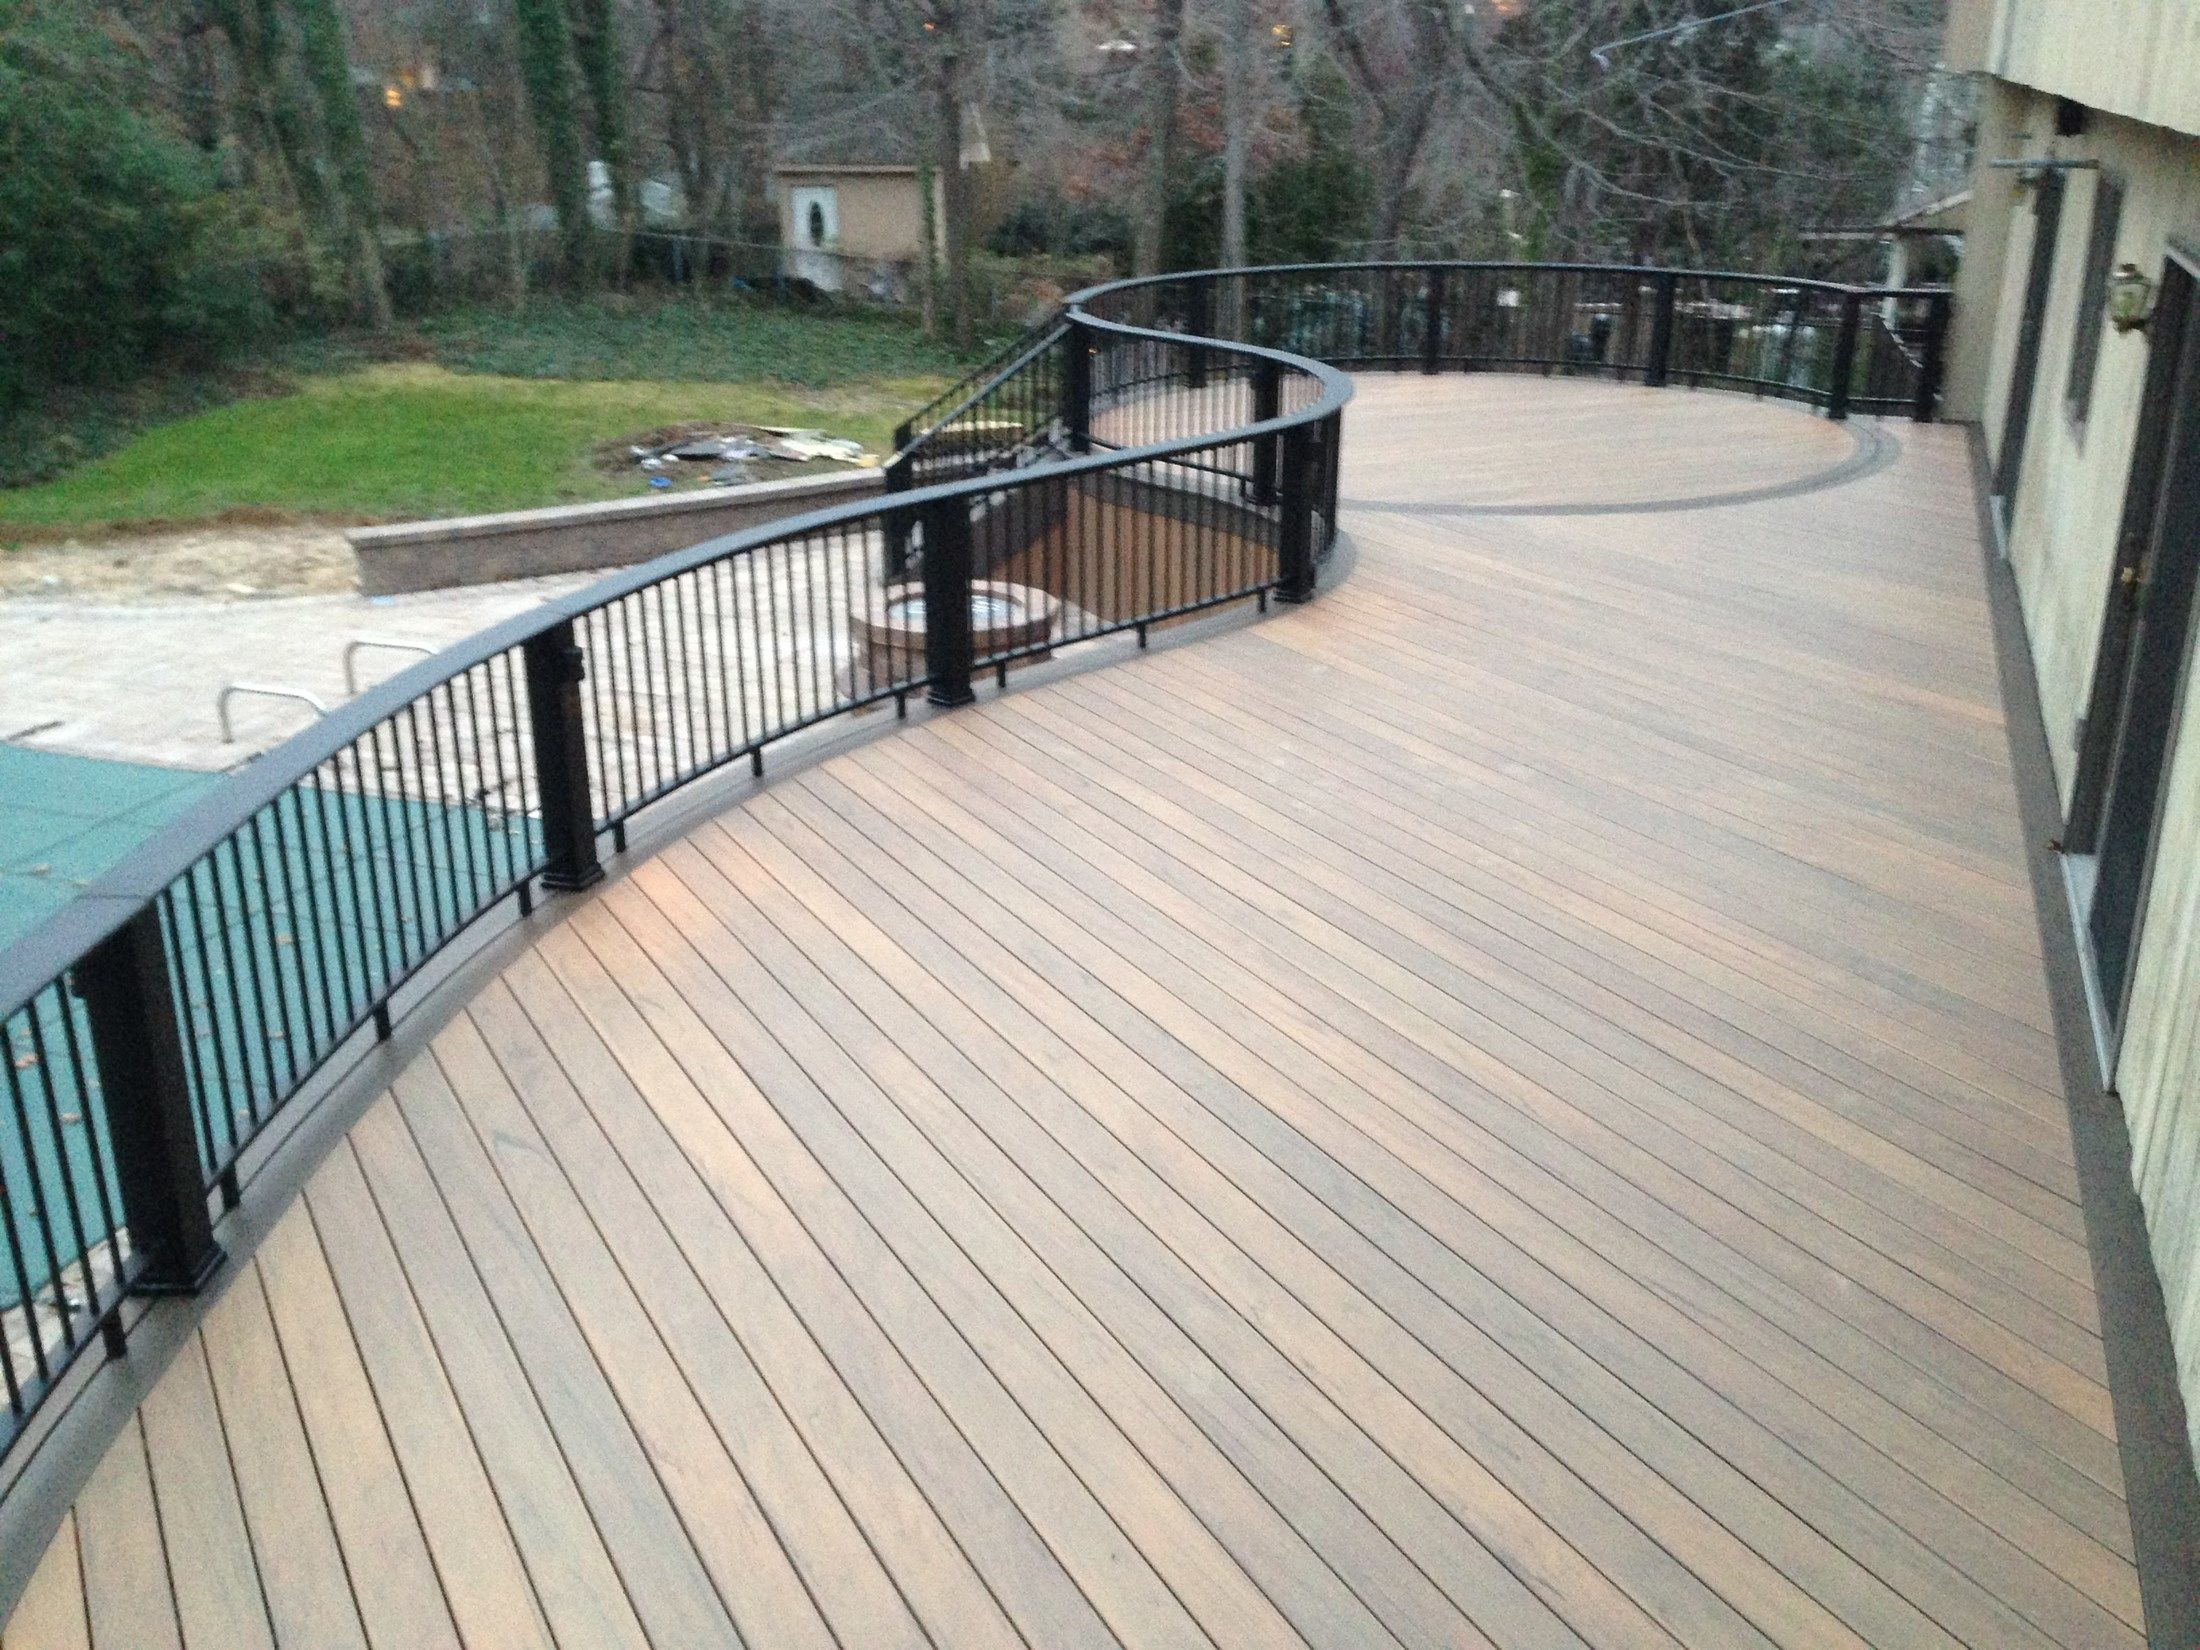 Decks.com. Composite Decking Material Review